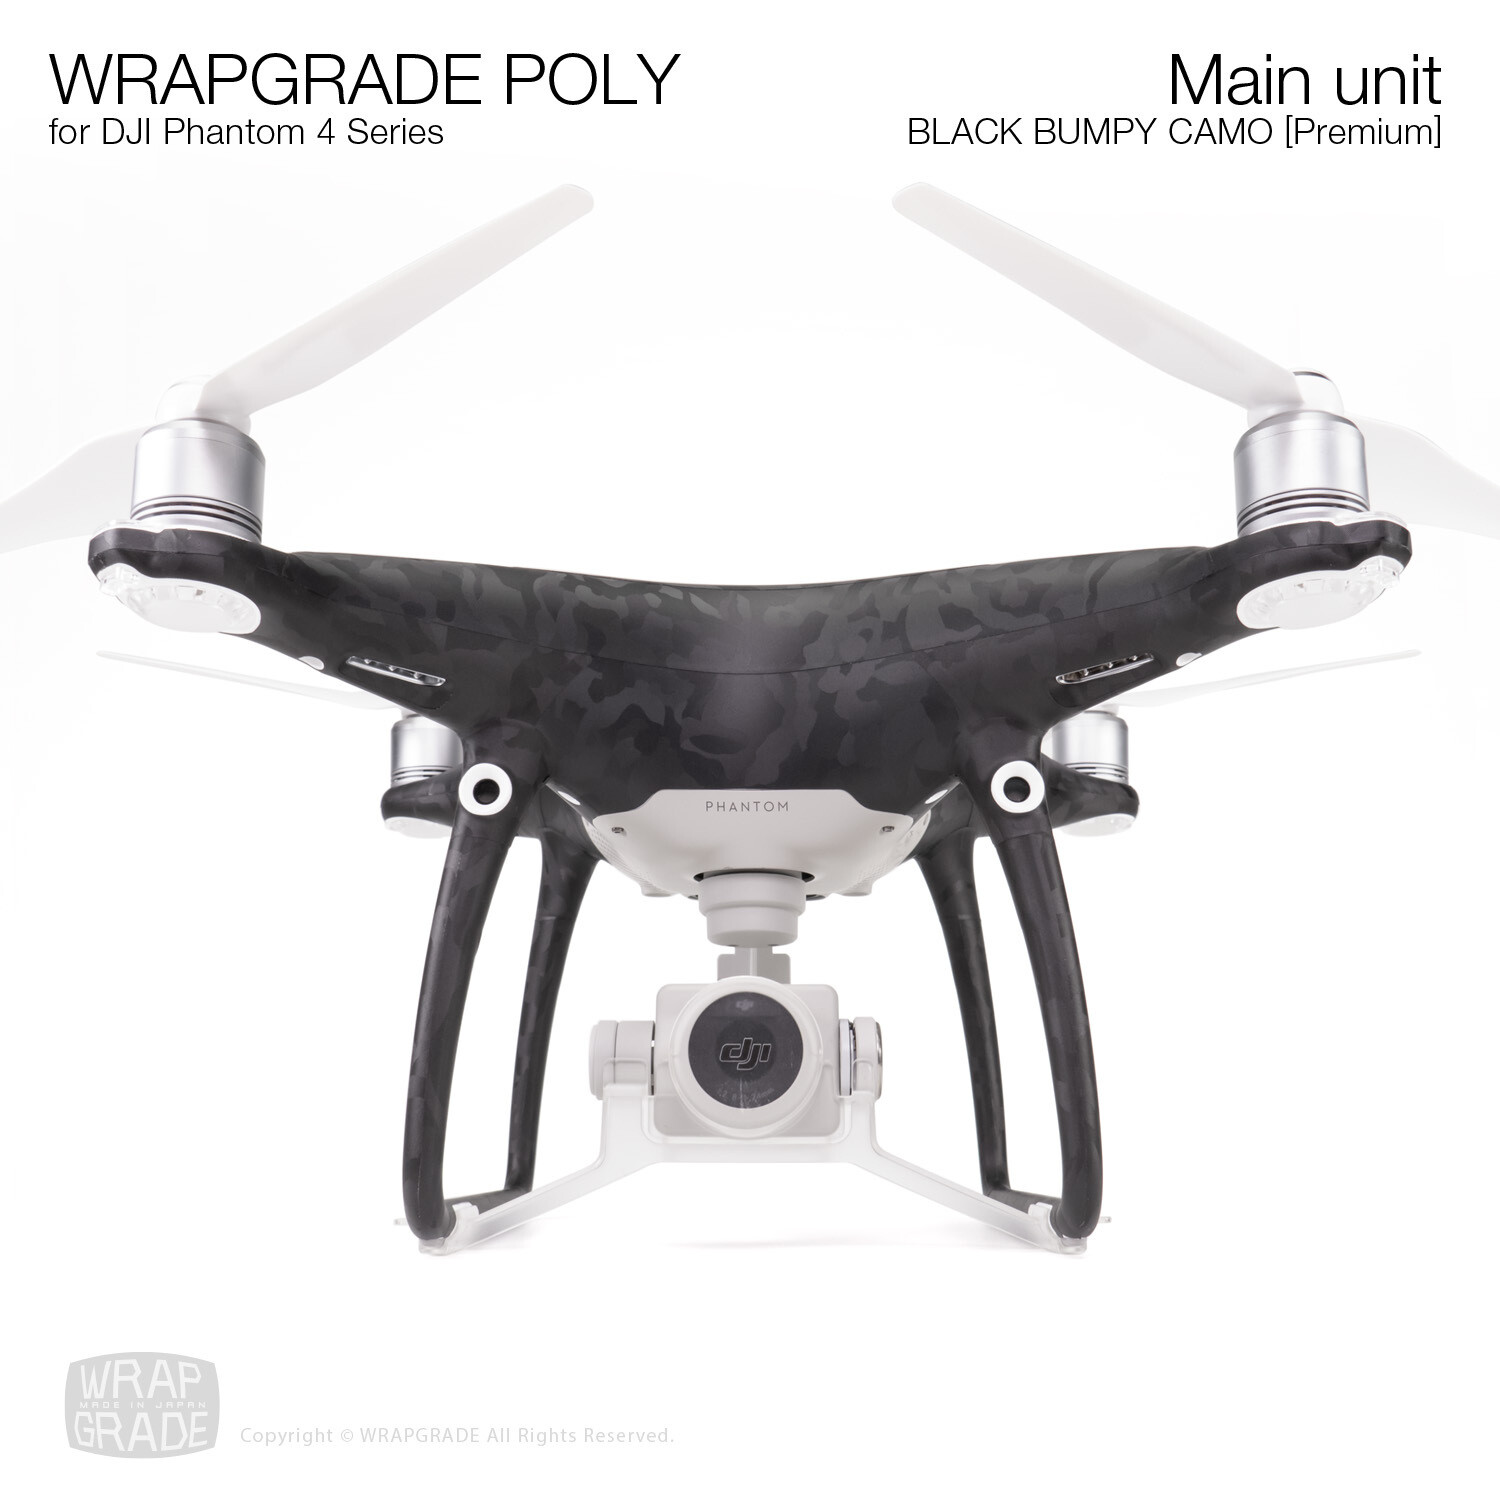 Wrapgrade Poly Skin for DJI Phantom 4 | Main unit (BLACK BUMPY CAMO)